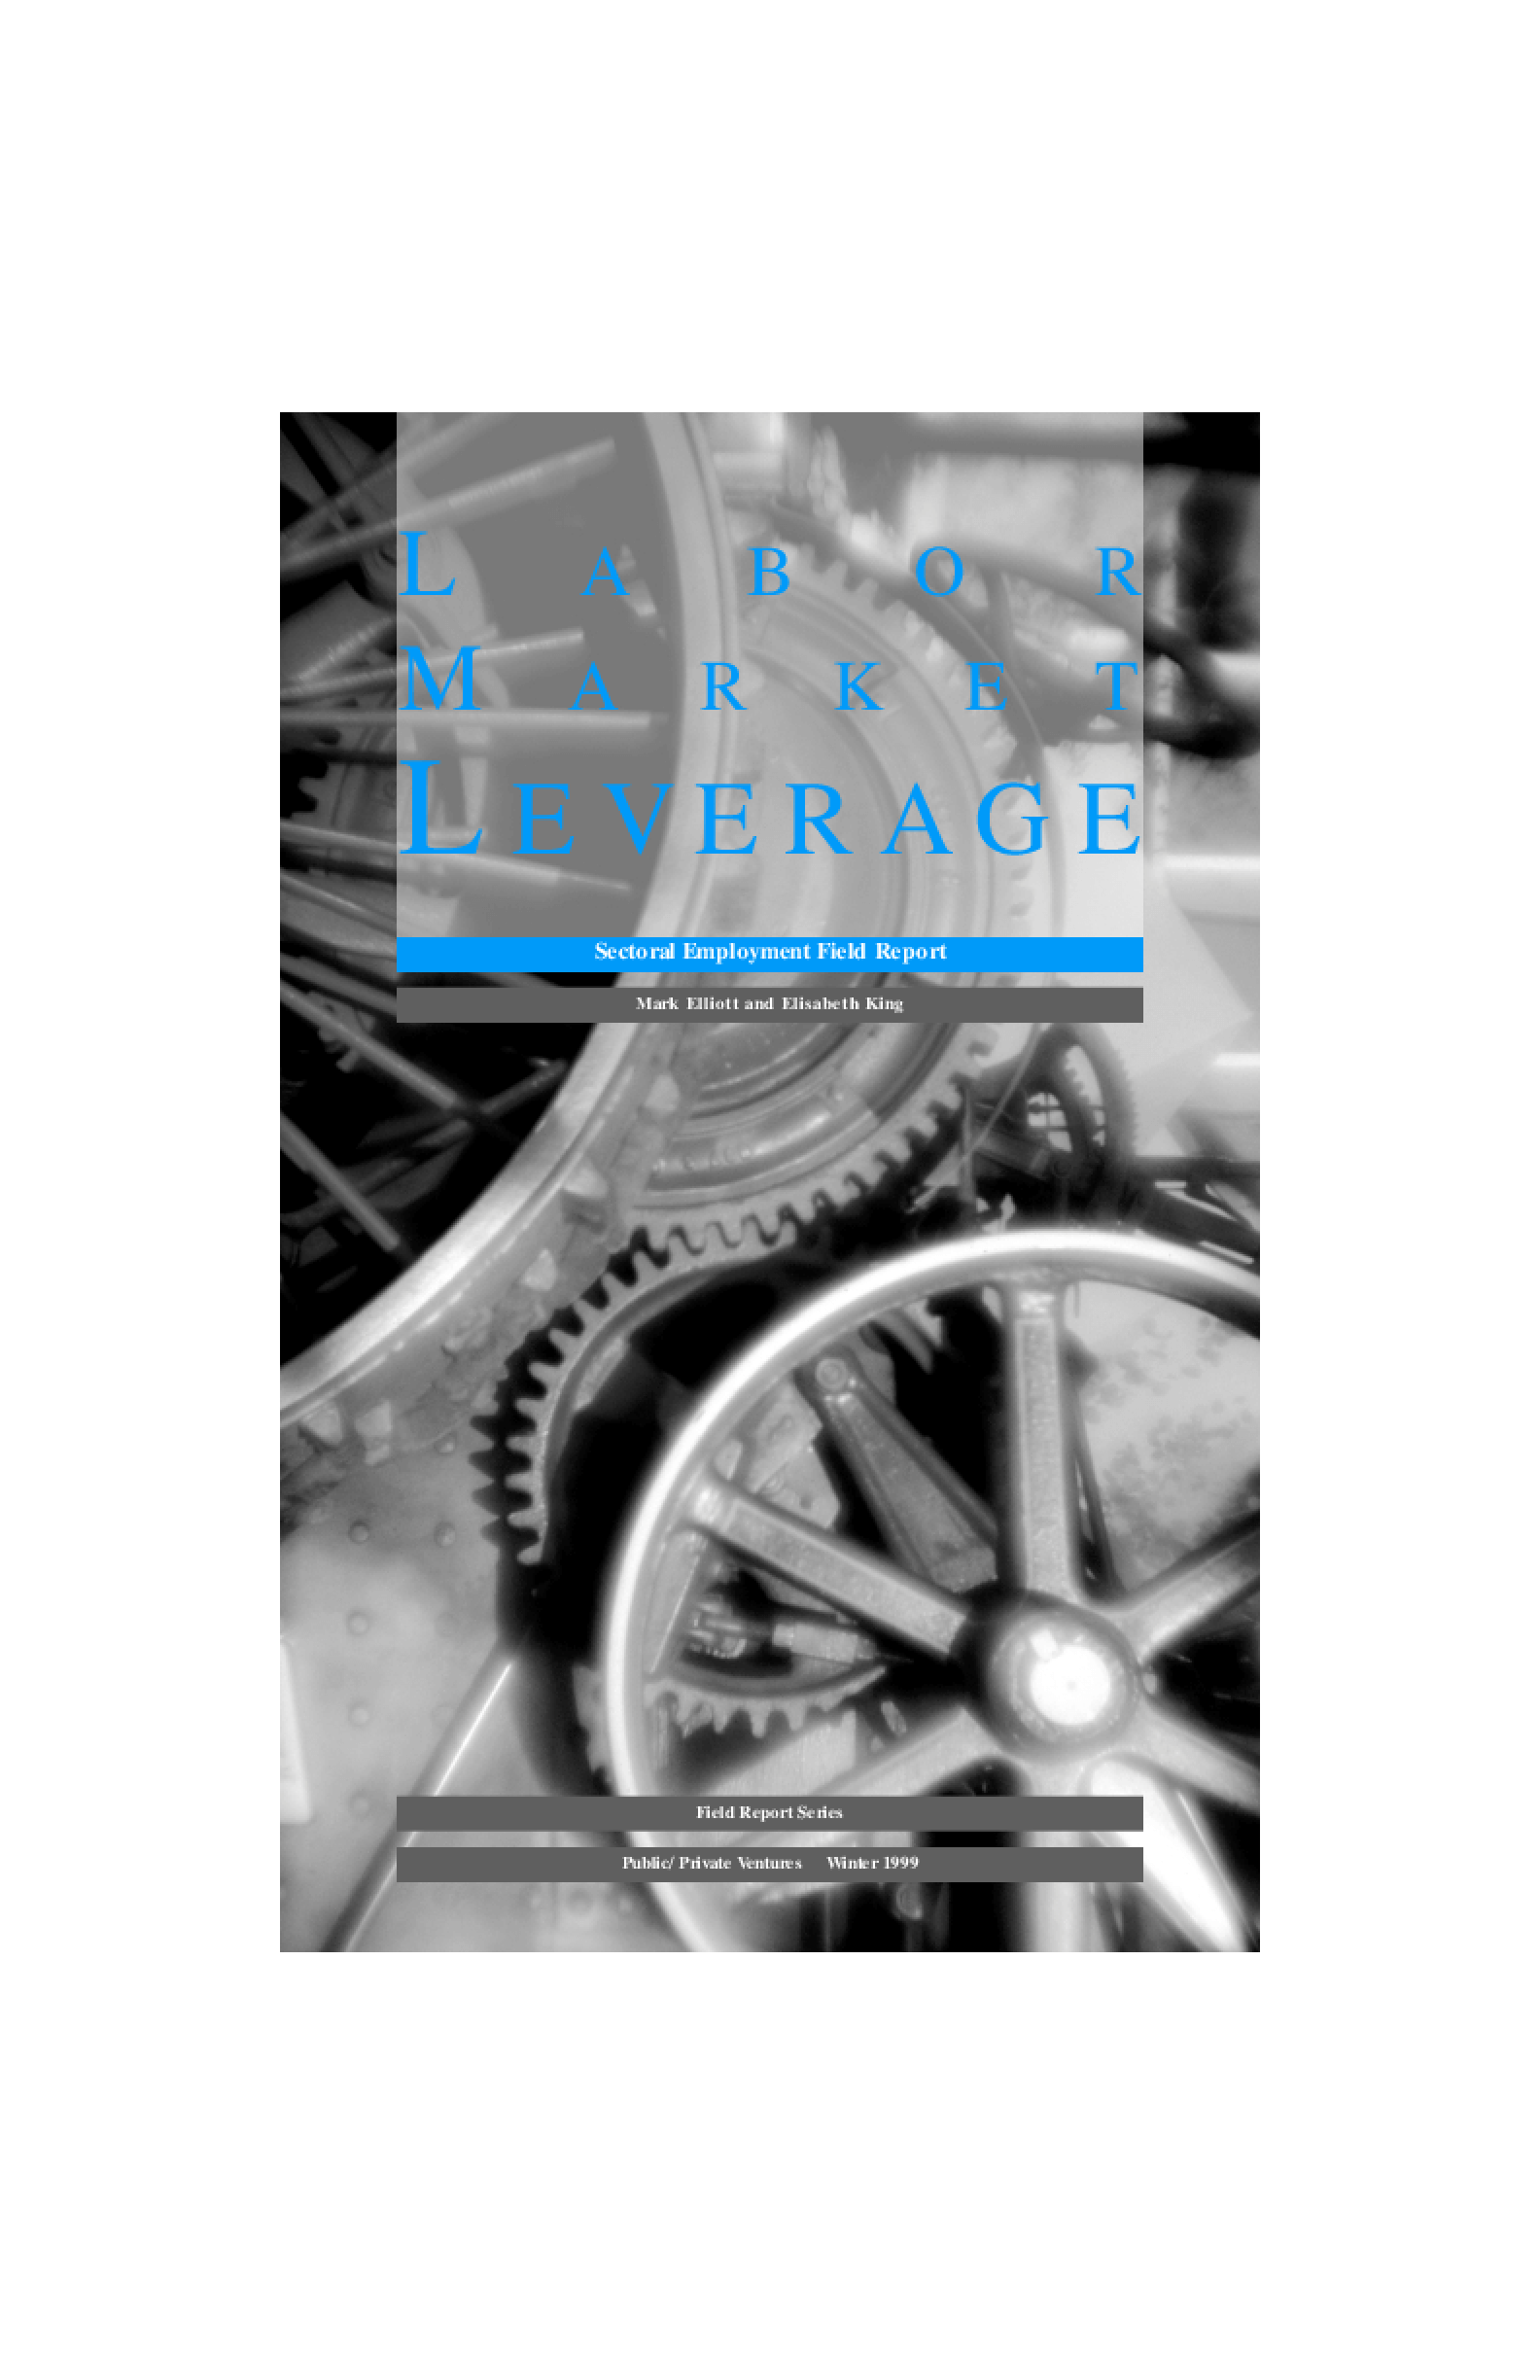 Labor Market Leverage: Sectoral Employment Field Report